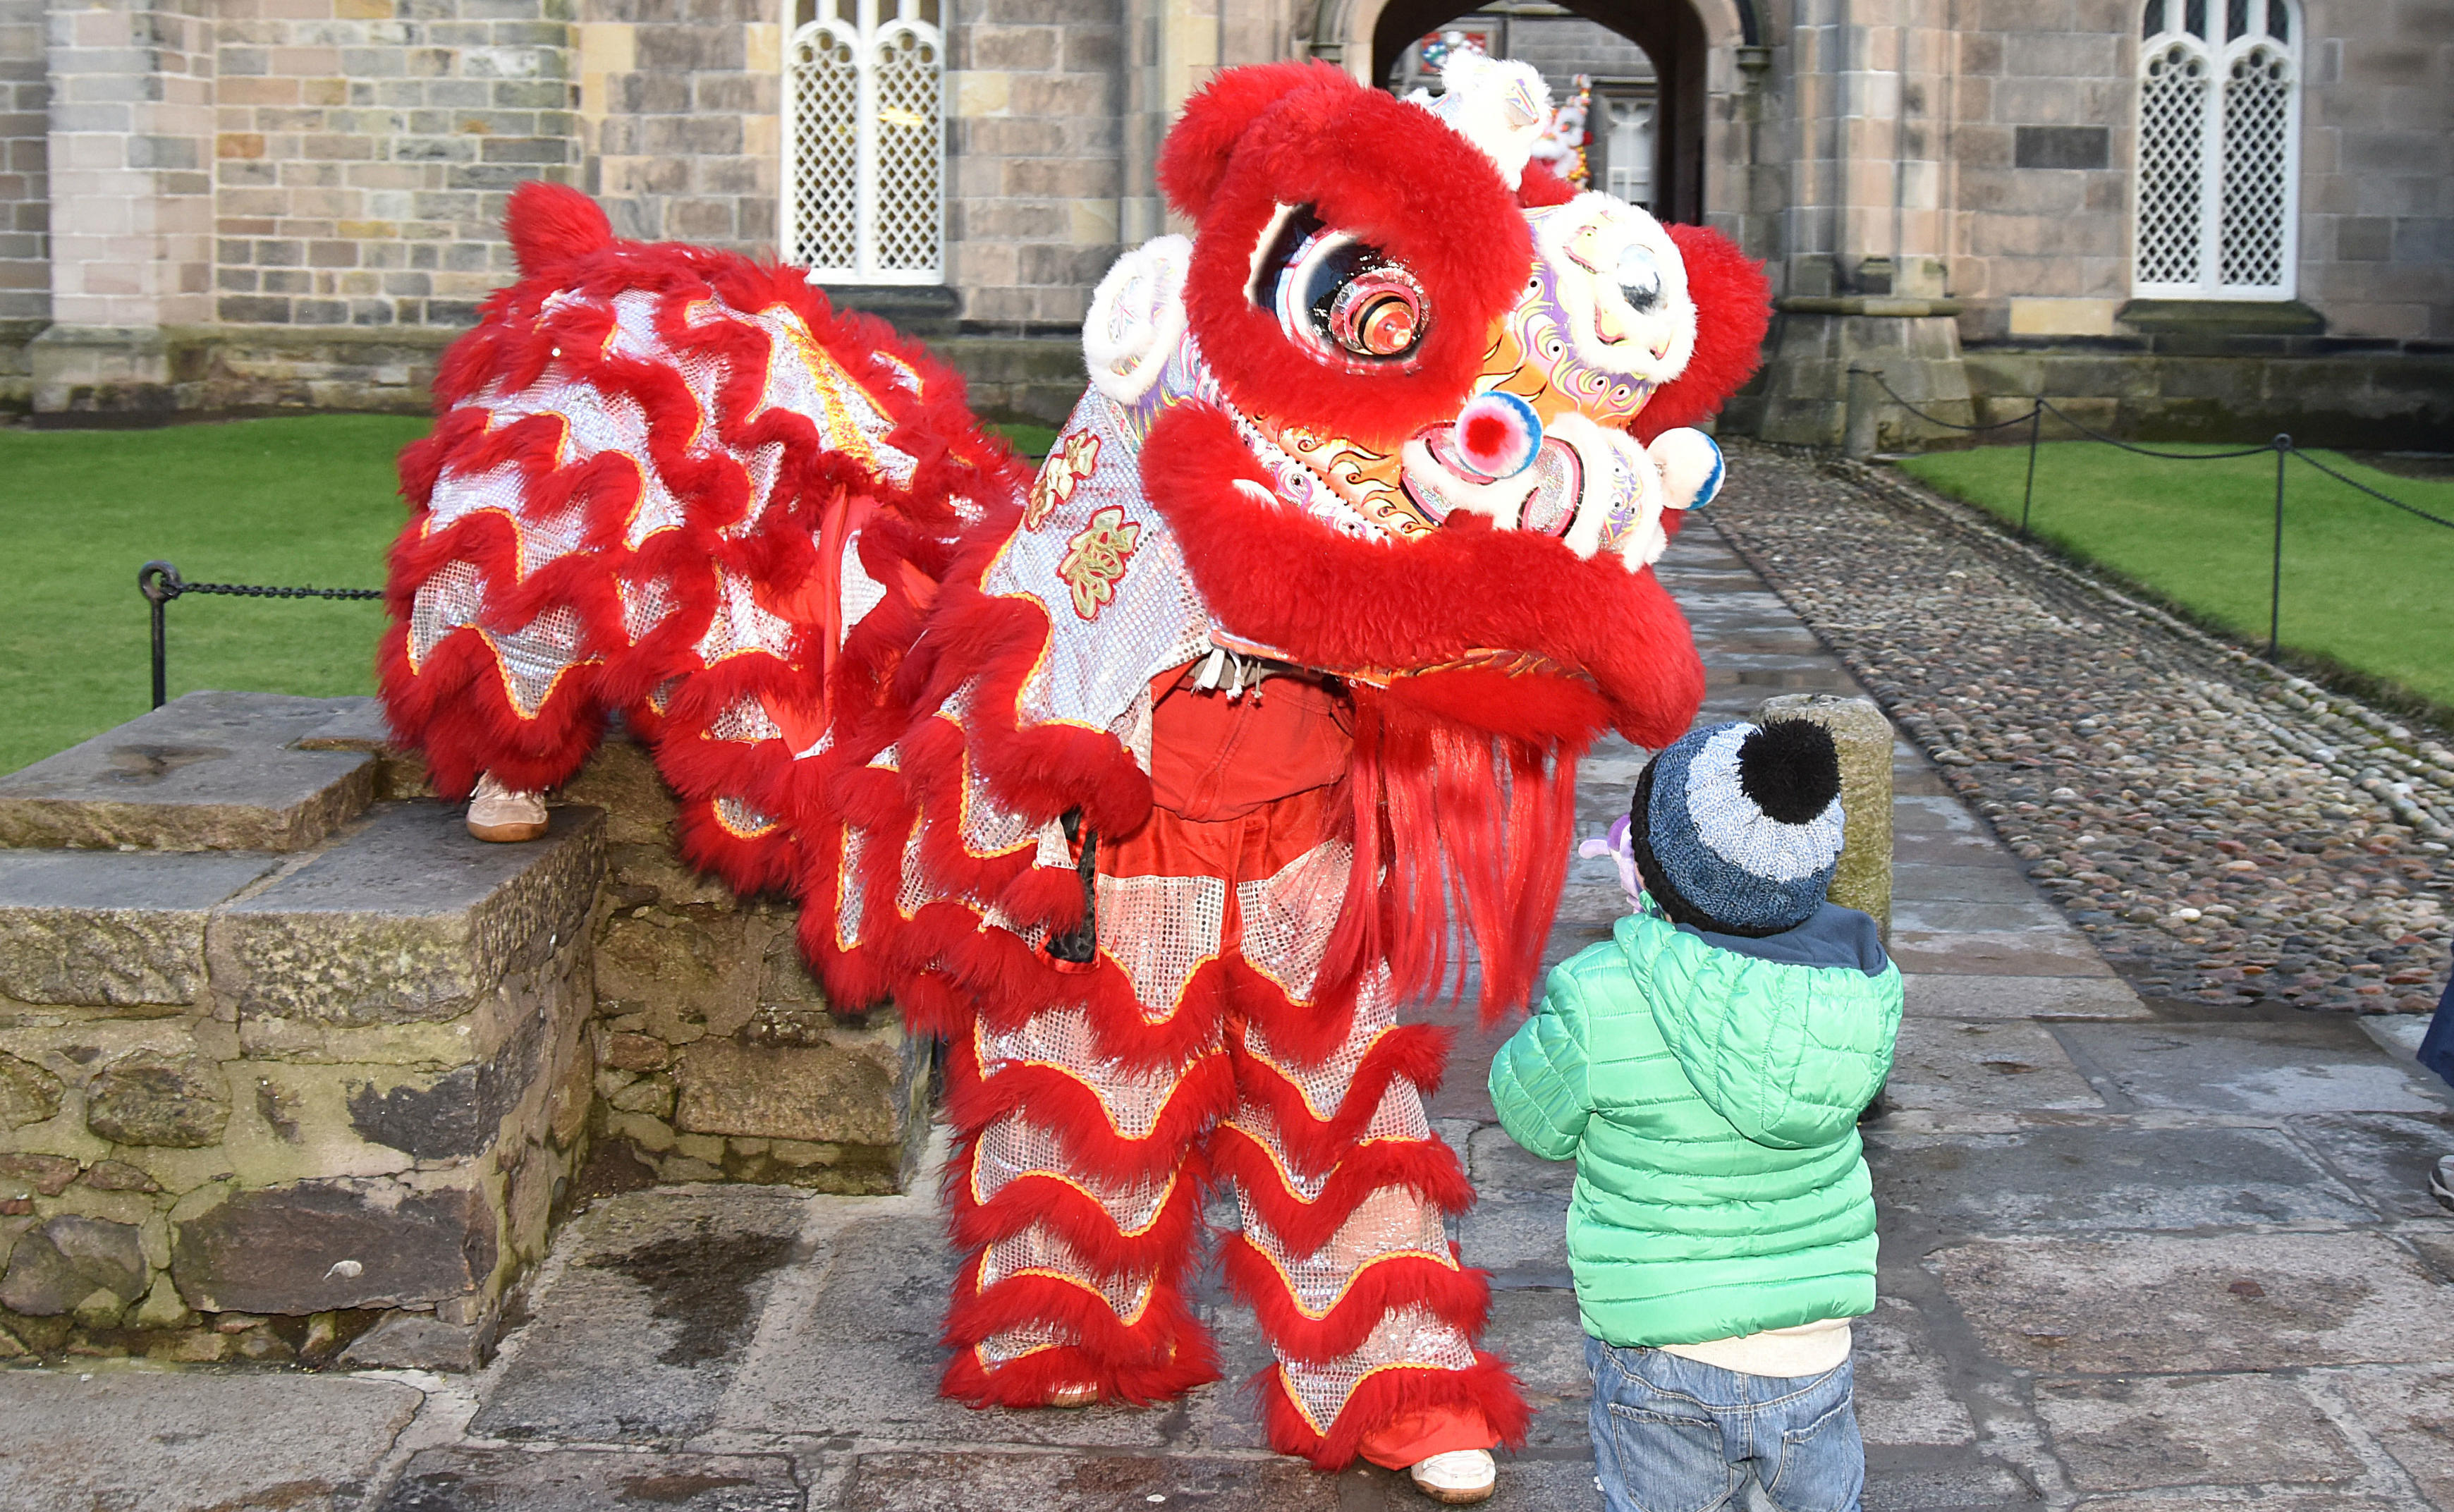 Aberdeen prepares for Chinese New Year festivities